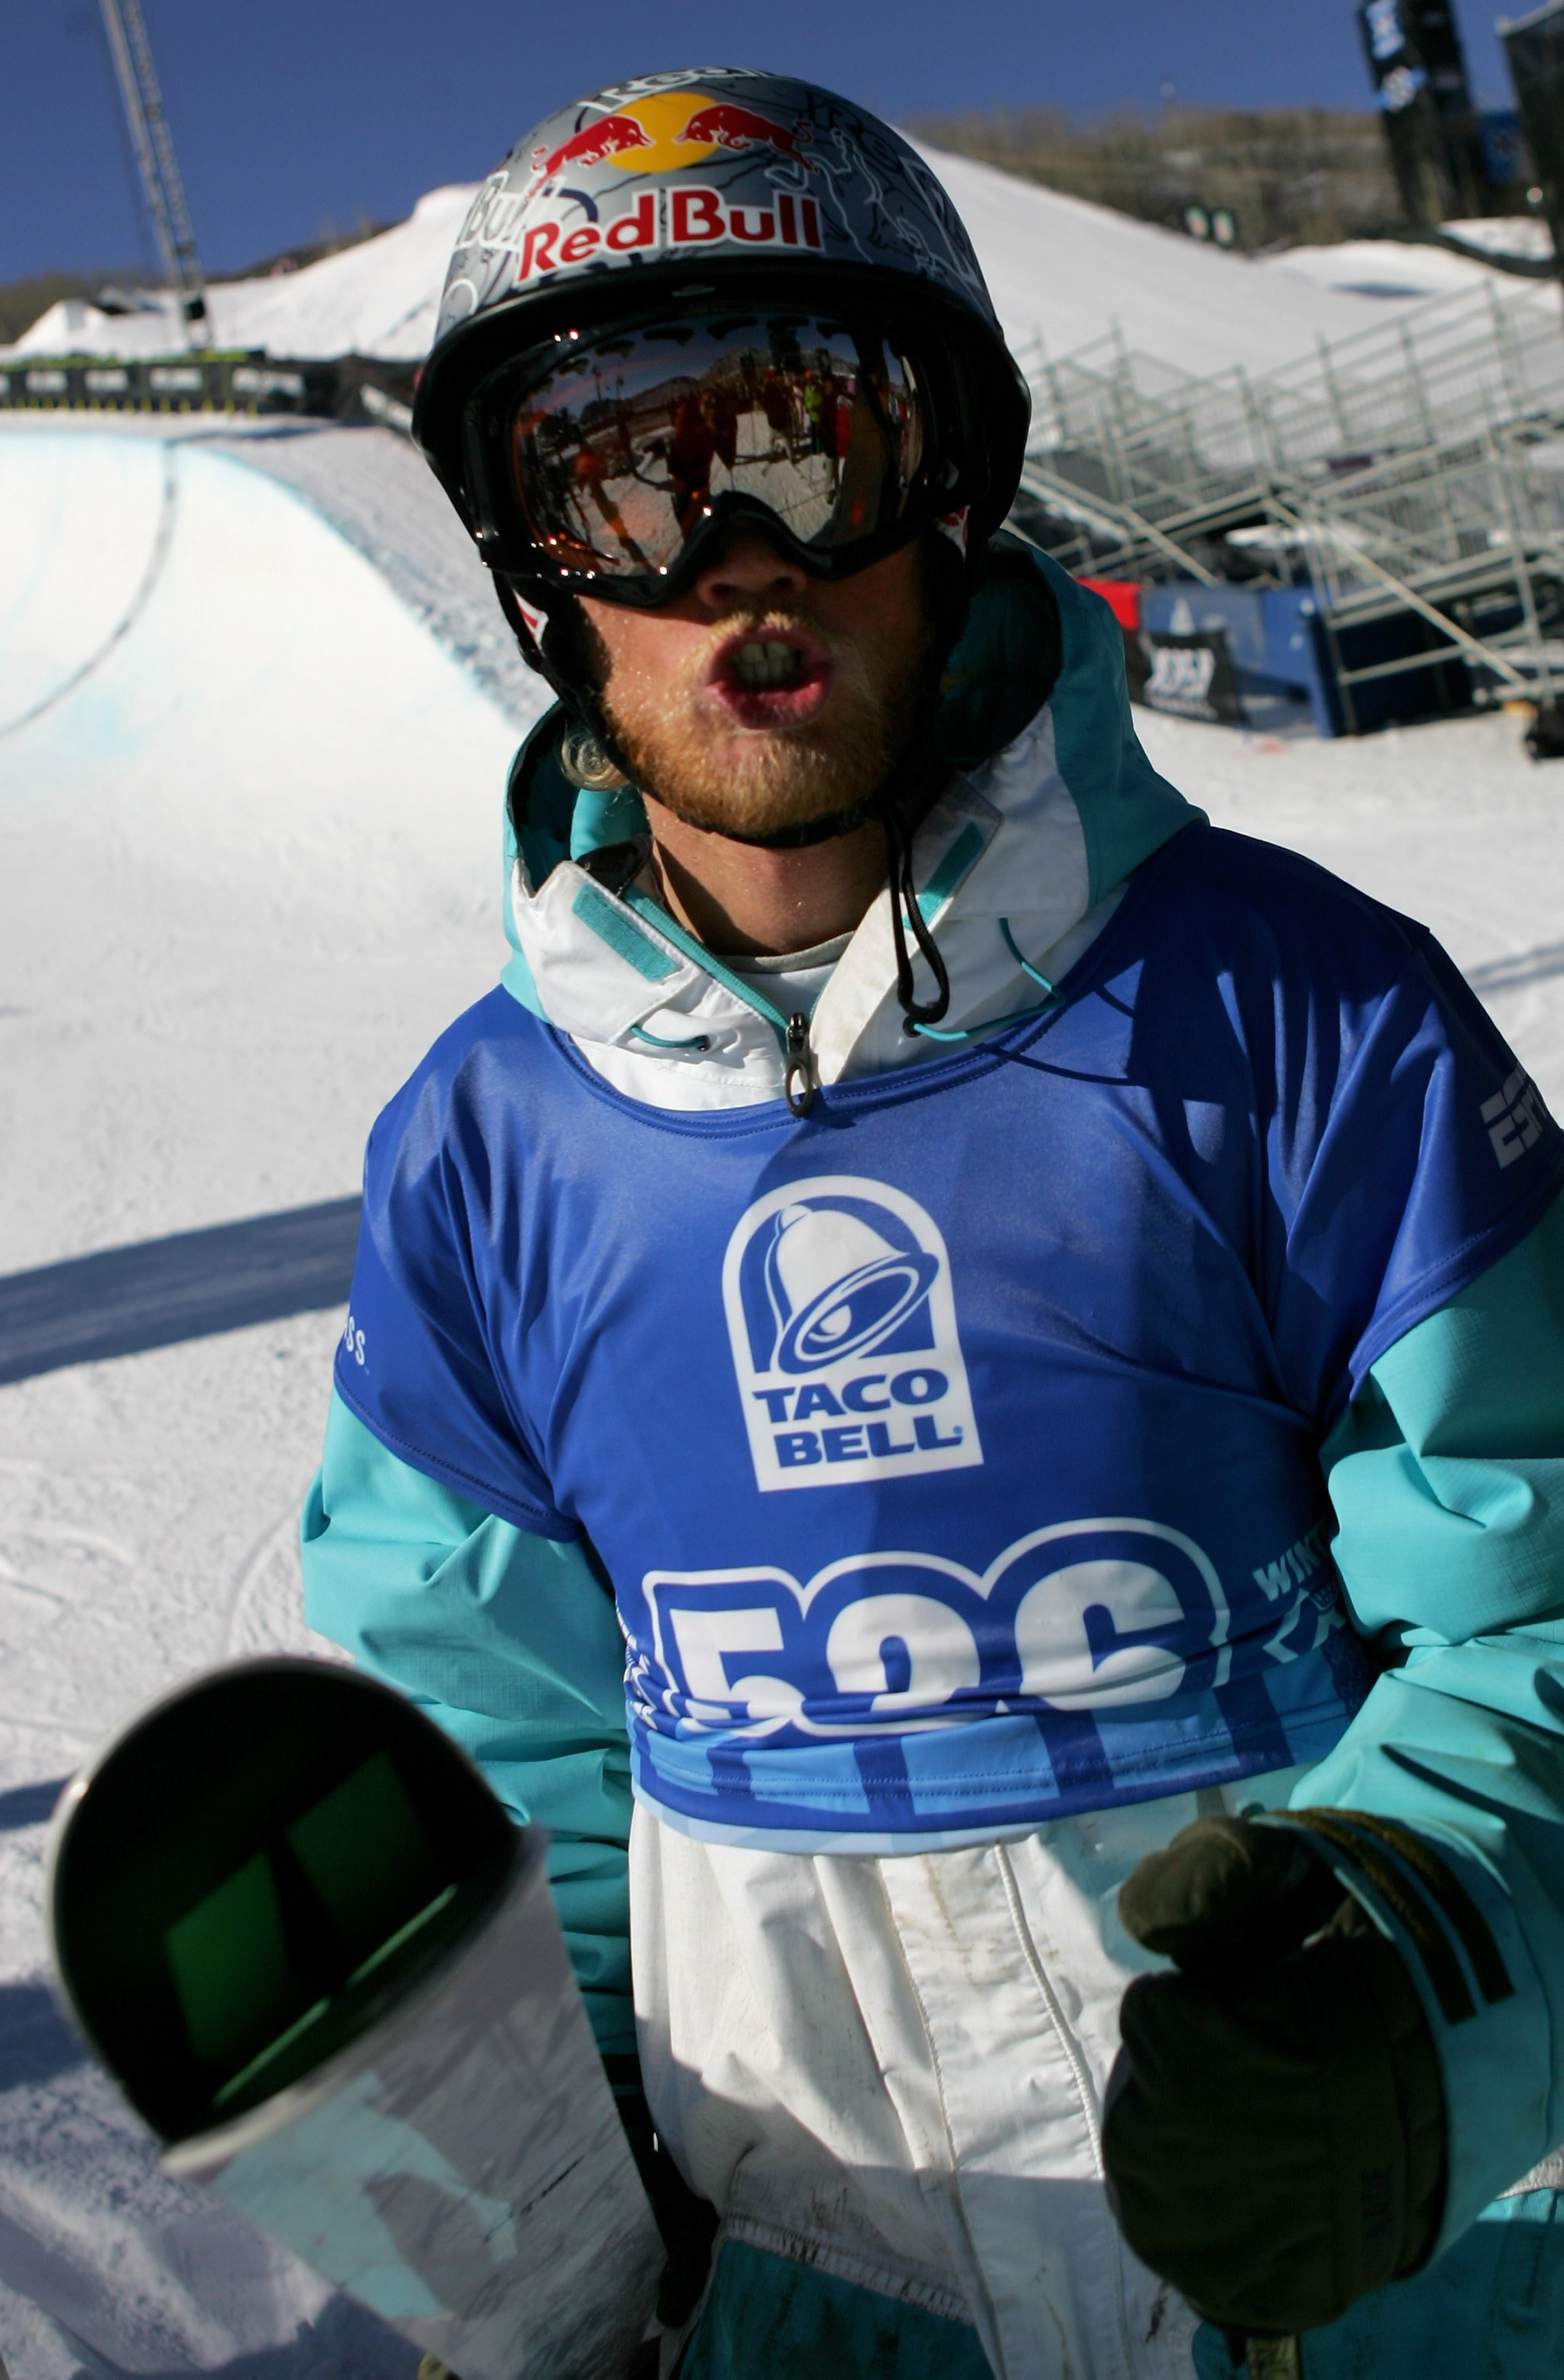 ASPEN, CO - JANUARY 25:  Tanner Hall of Kalispell, Montana leaves the pipe after competing in the Skiing Superpipe Men's Elimination at the ESPN Winter X Games 11 on January 25, 2007 in Aspen, Colorado.  (Photo by Doug Pensinger/Getty Images)